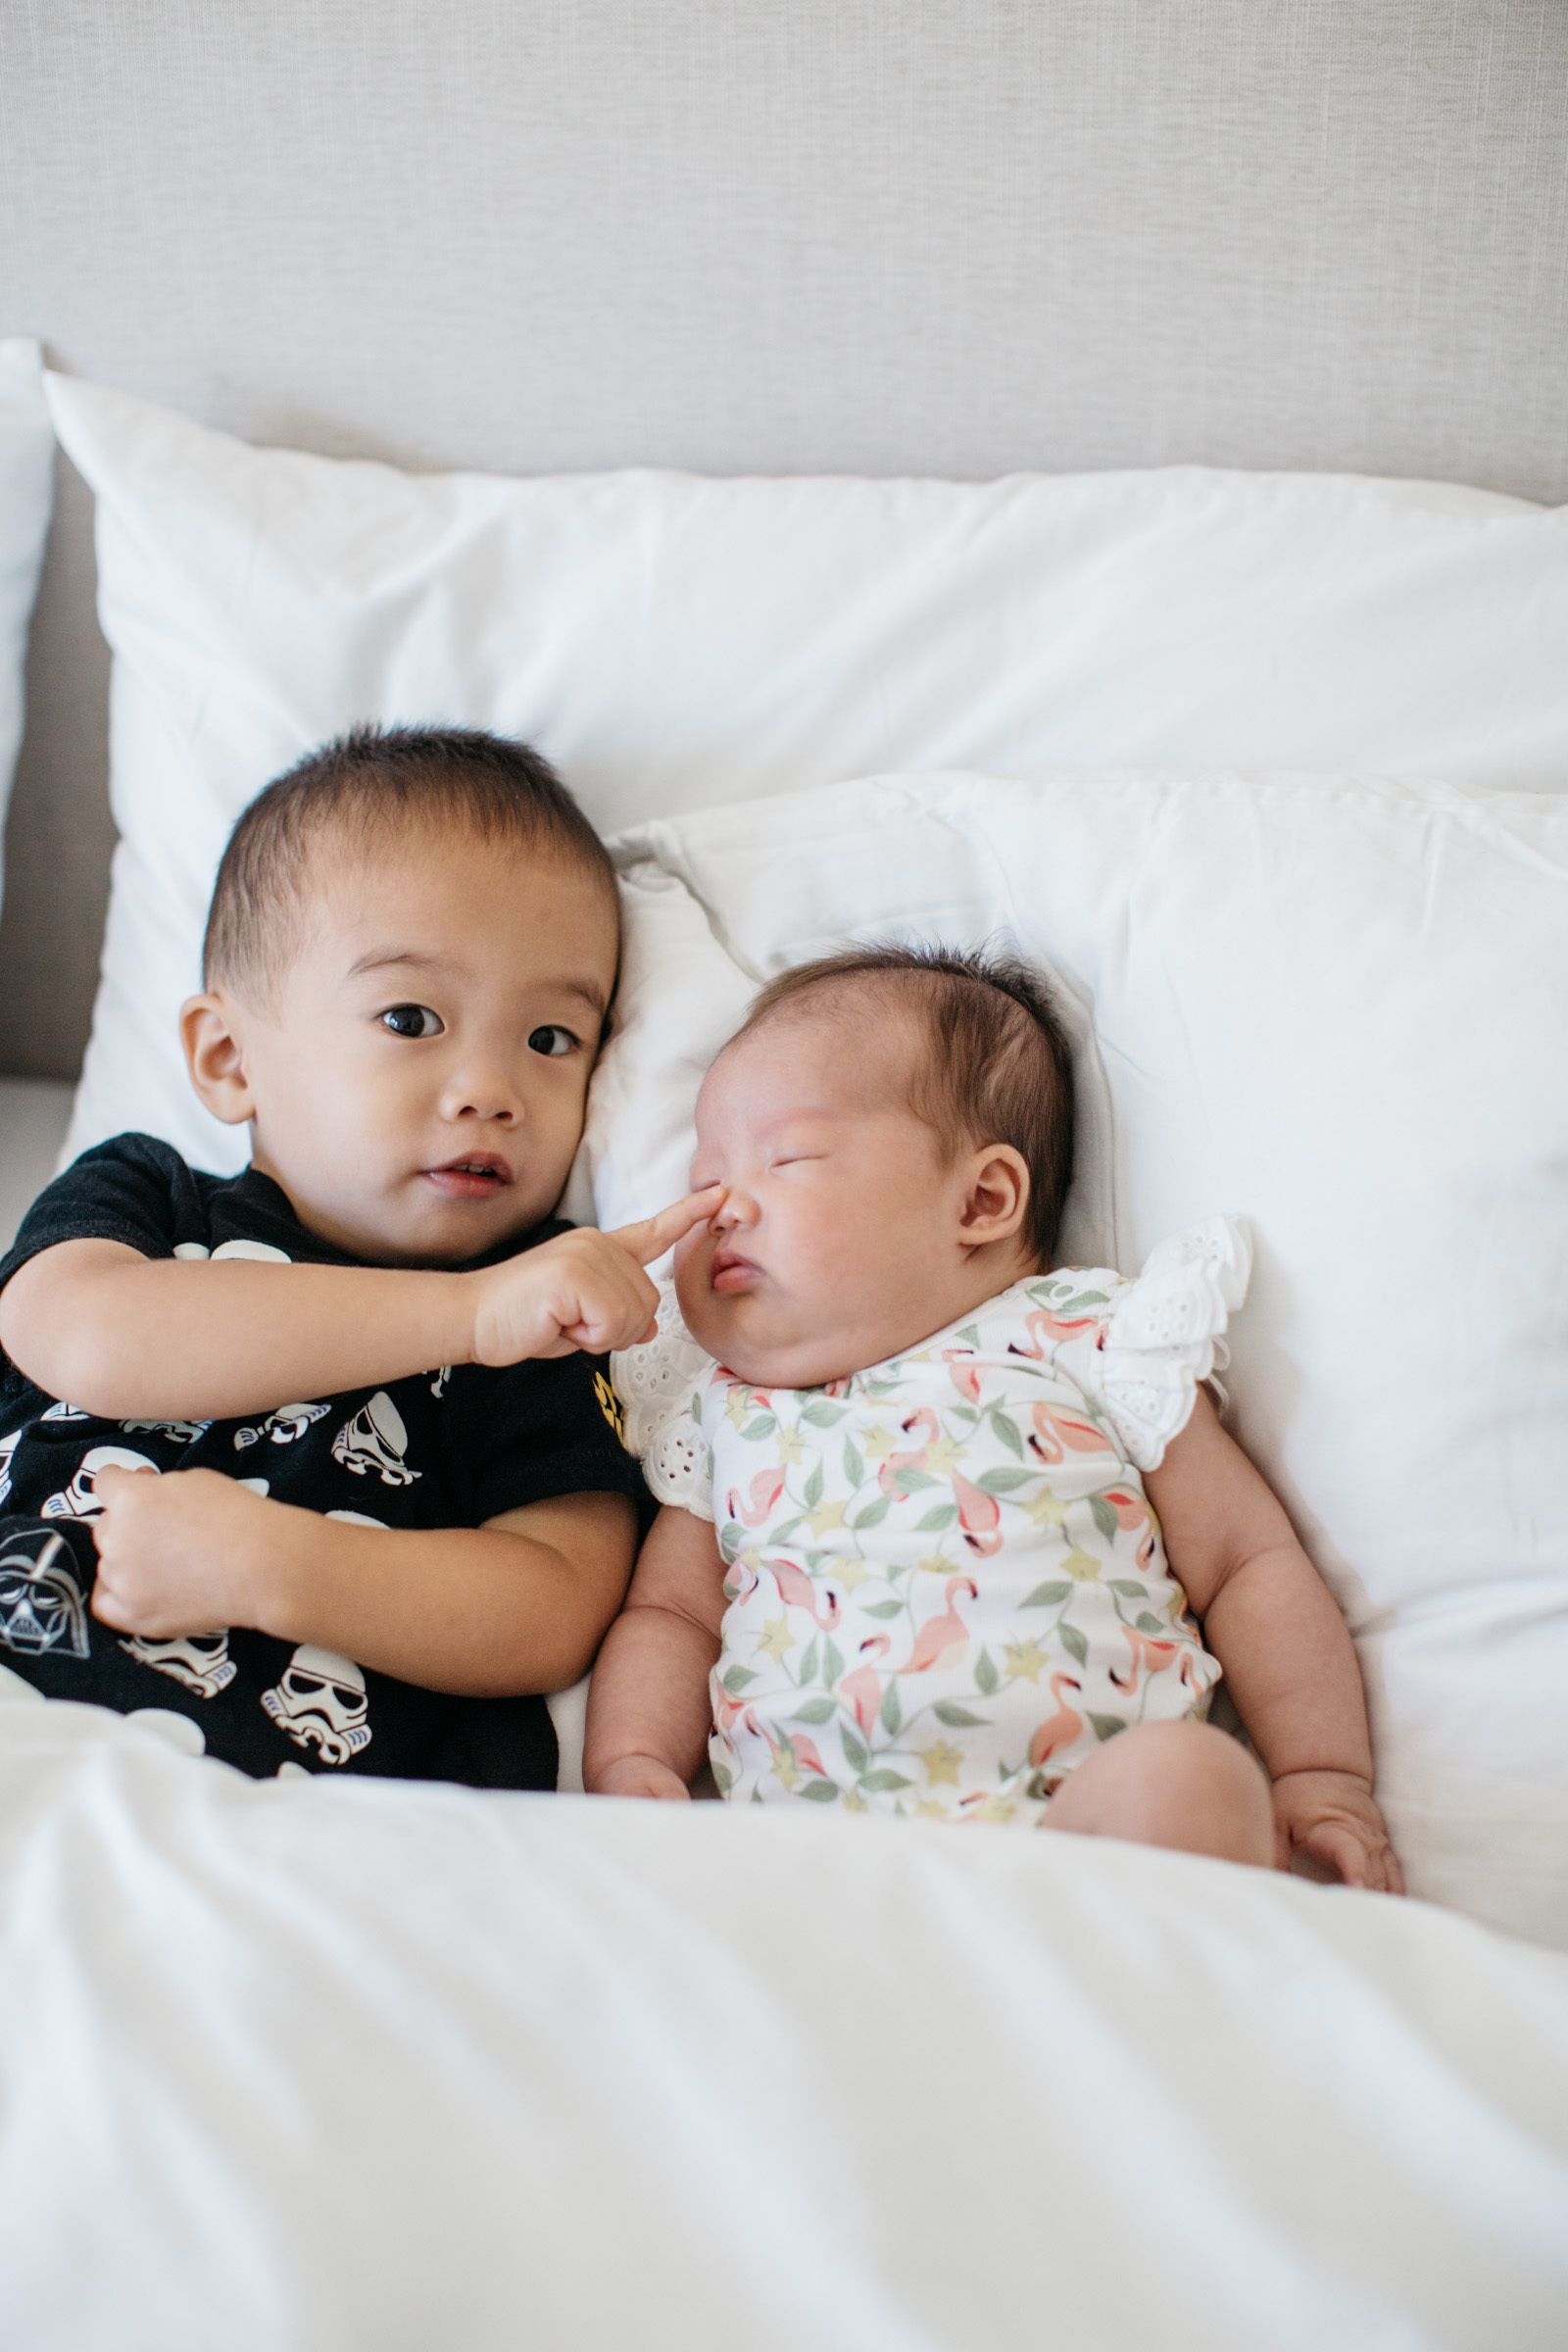 Fung-Family-documentary-lifestyle-photography-newborn-nyc-new-jersey-18.jpg